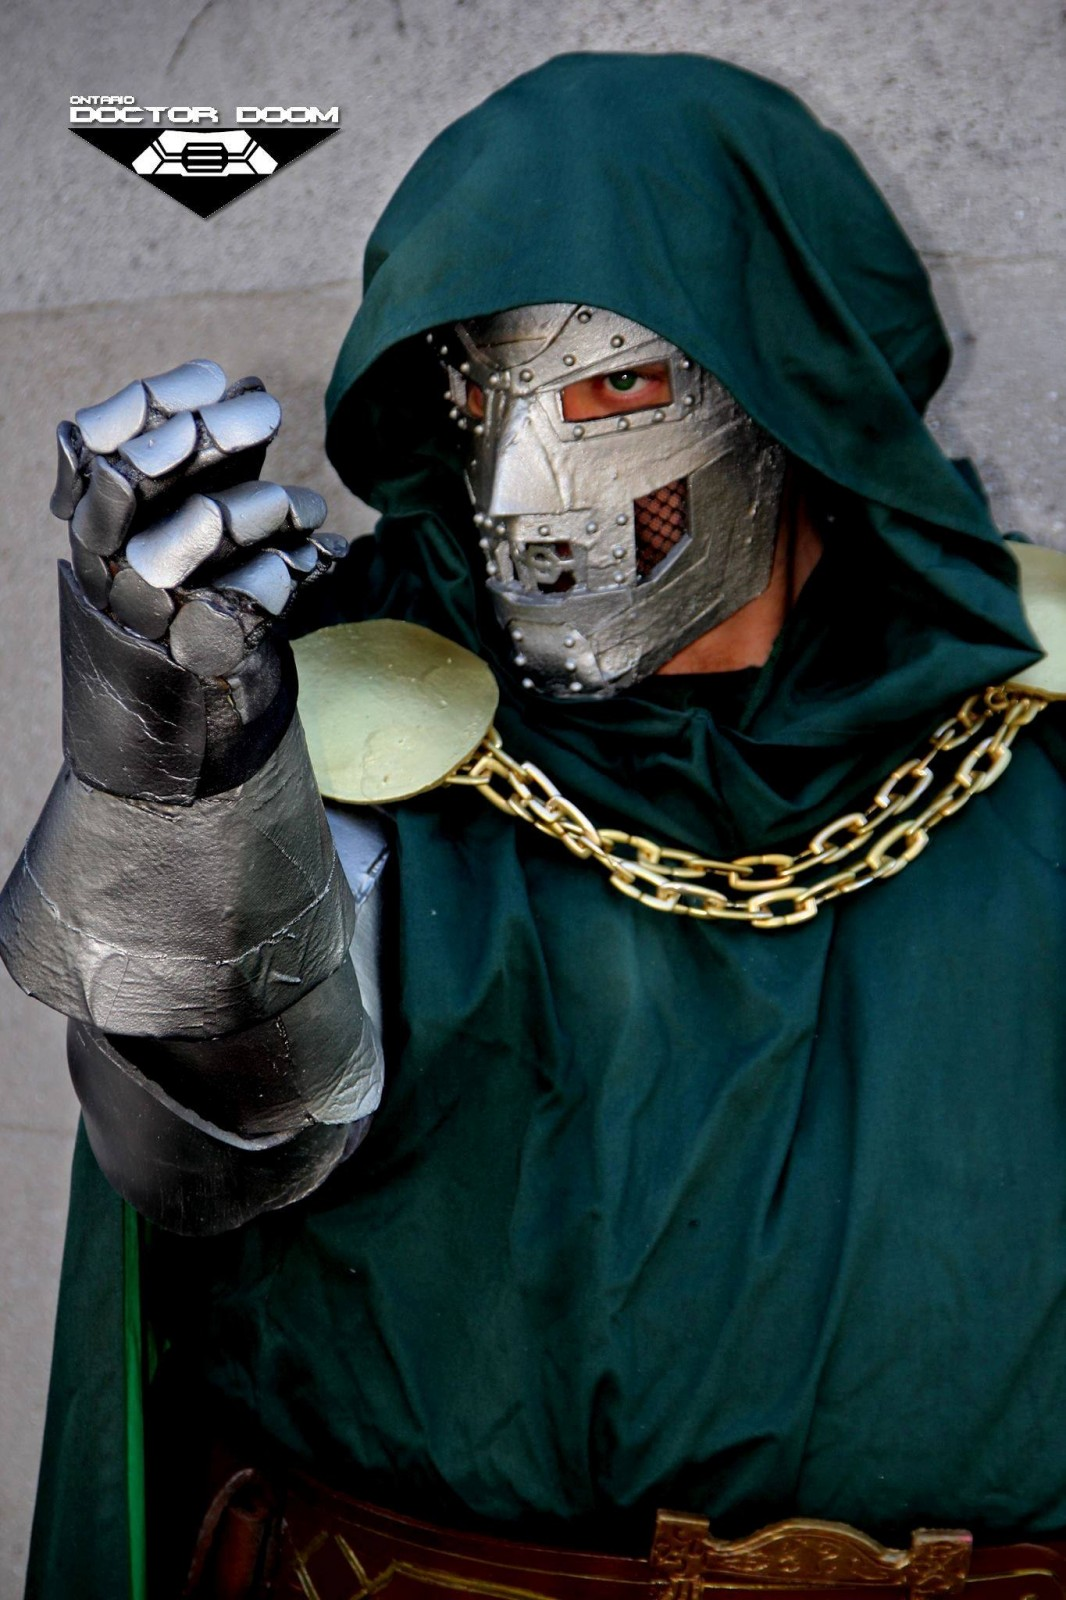 The Ontario Doctor Doom takes on the London Comic Con